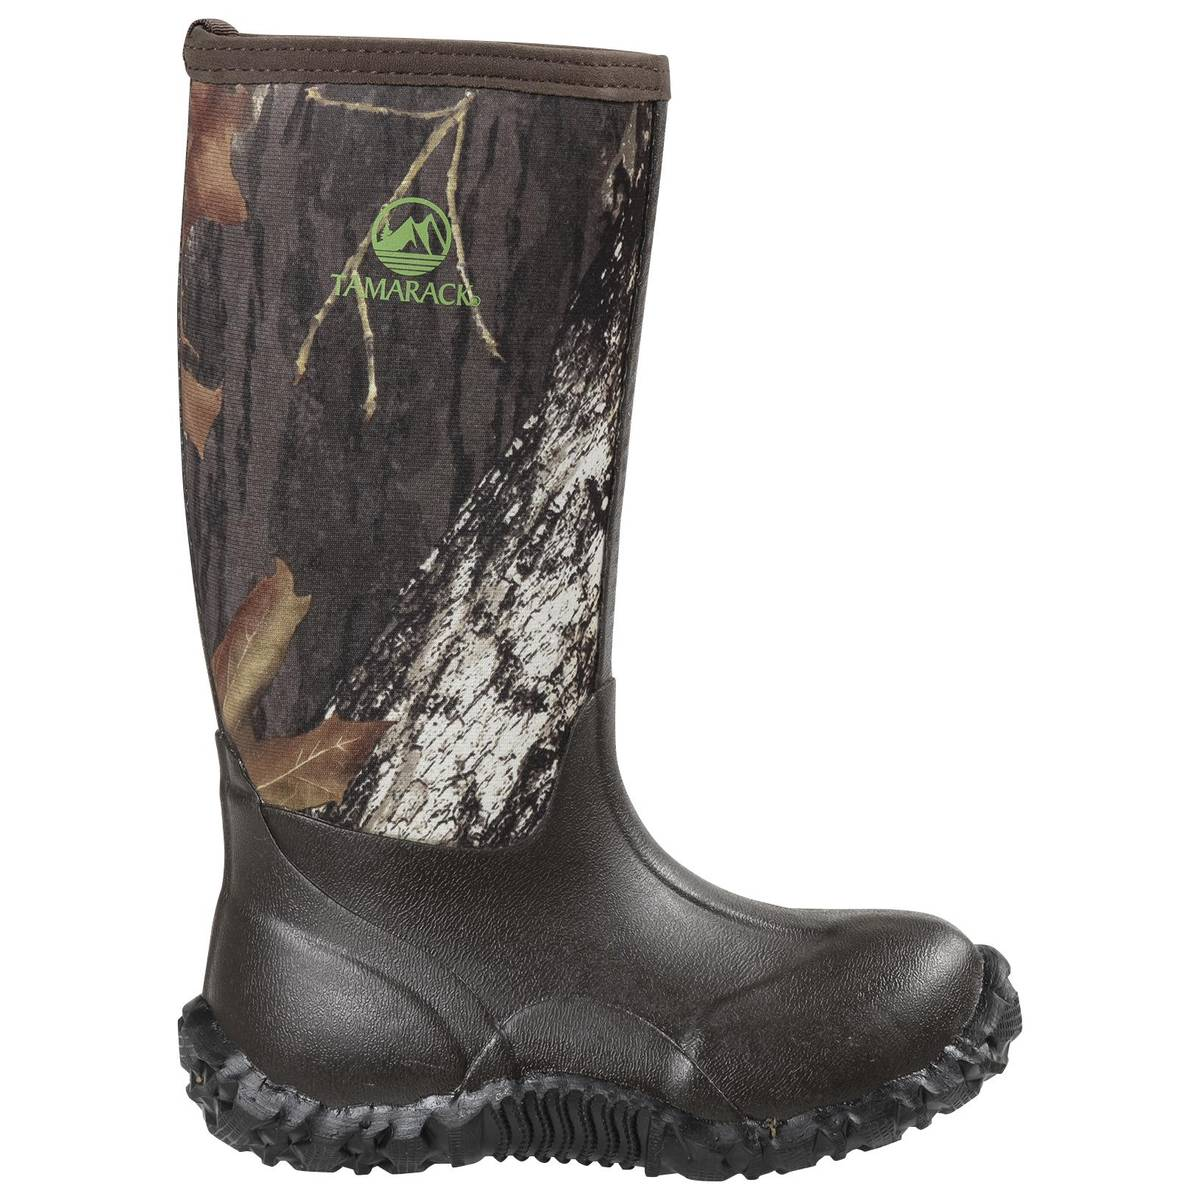 efcf7f9430d Shoes and Boots   Blain's Farm and Fleet